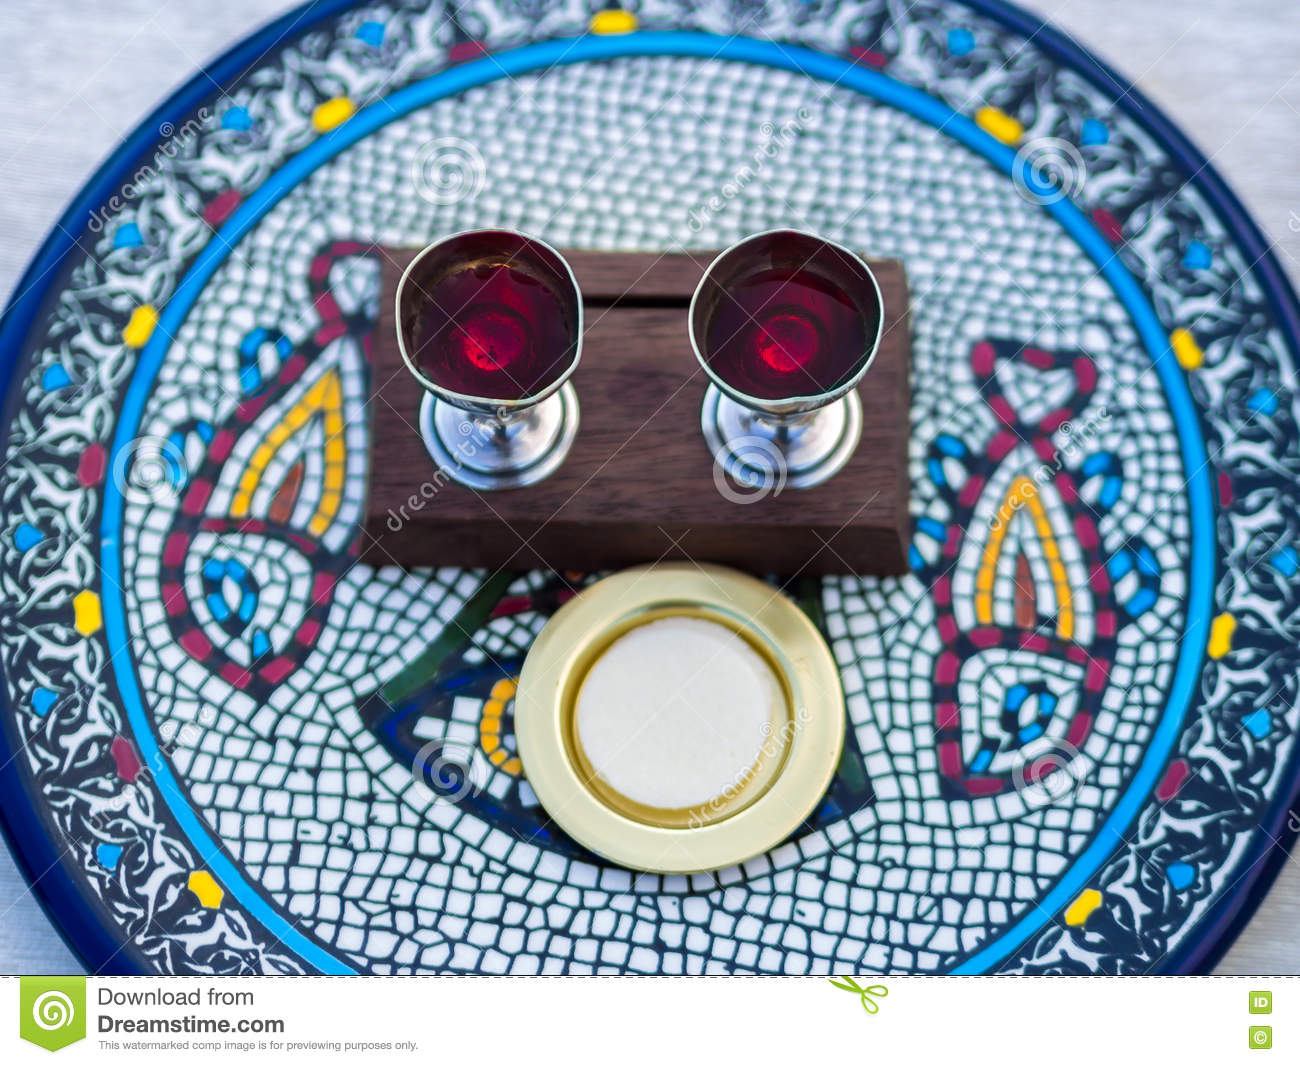 Wine and Host (Sacramental Bread) on Ceramic Plate